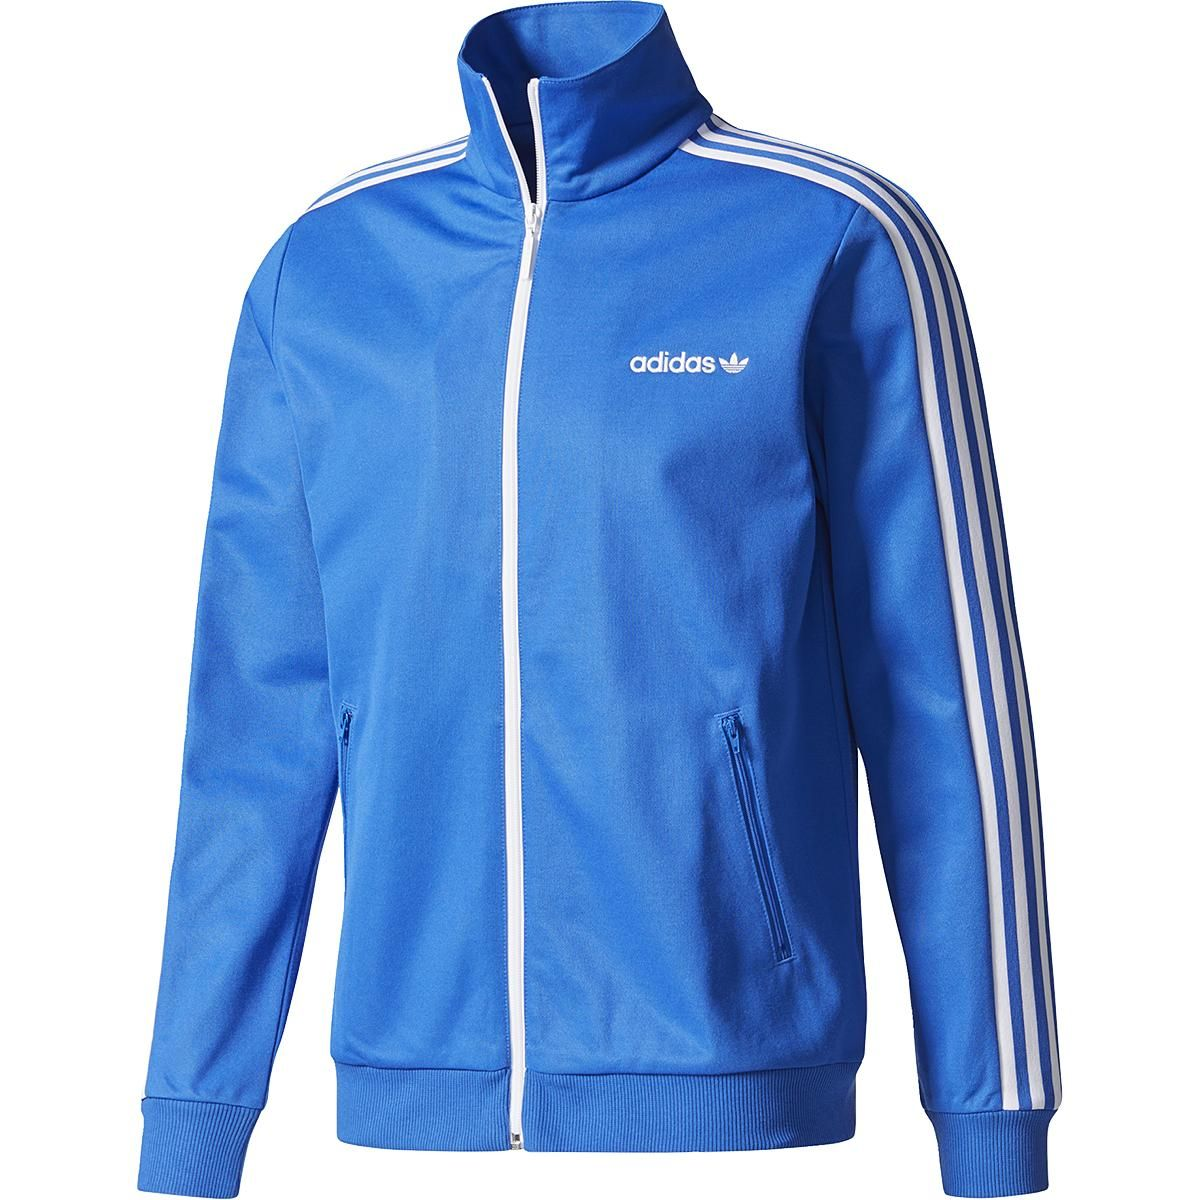 bb tracktop adidas originals